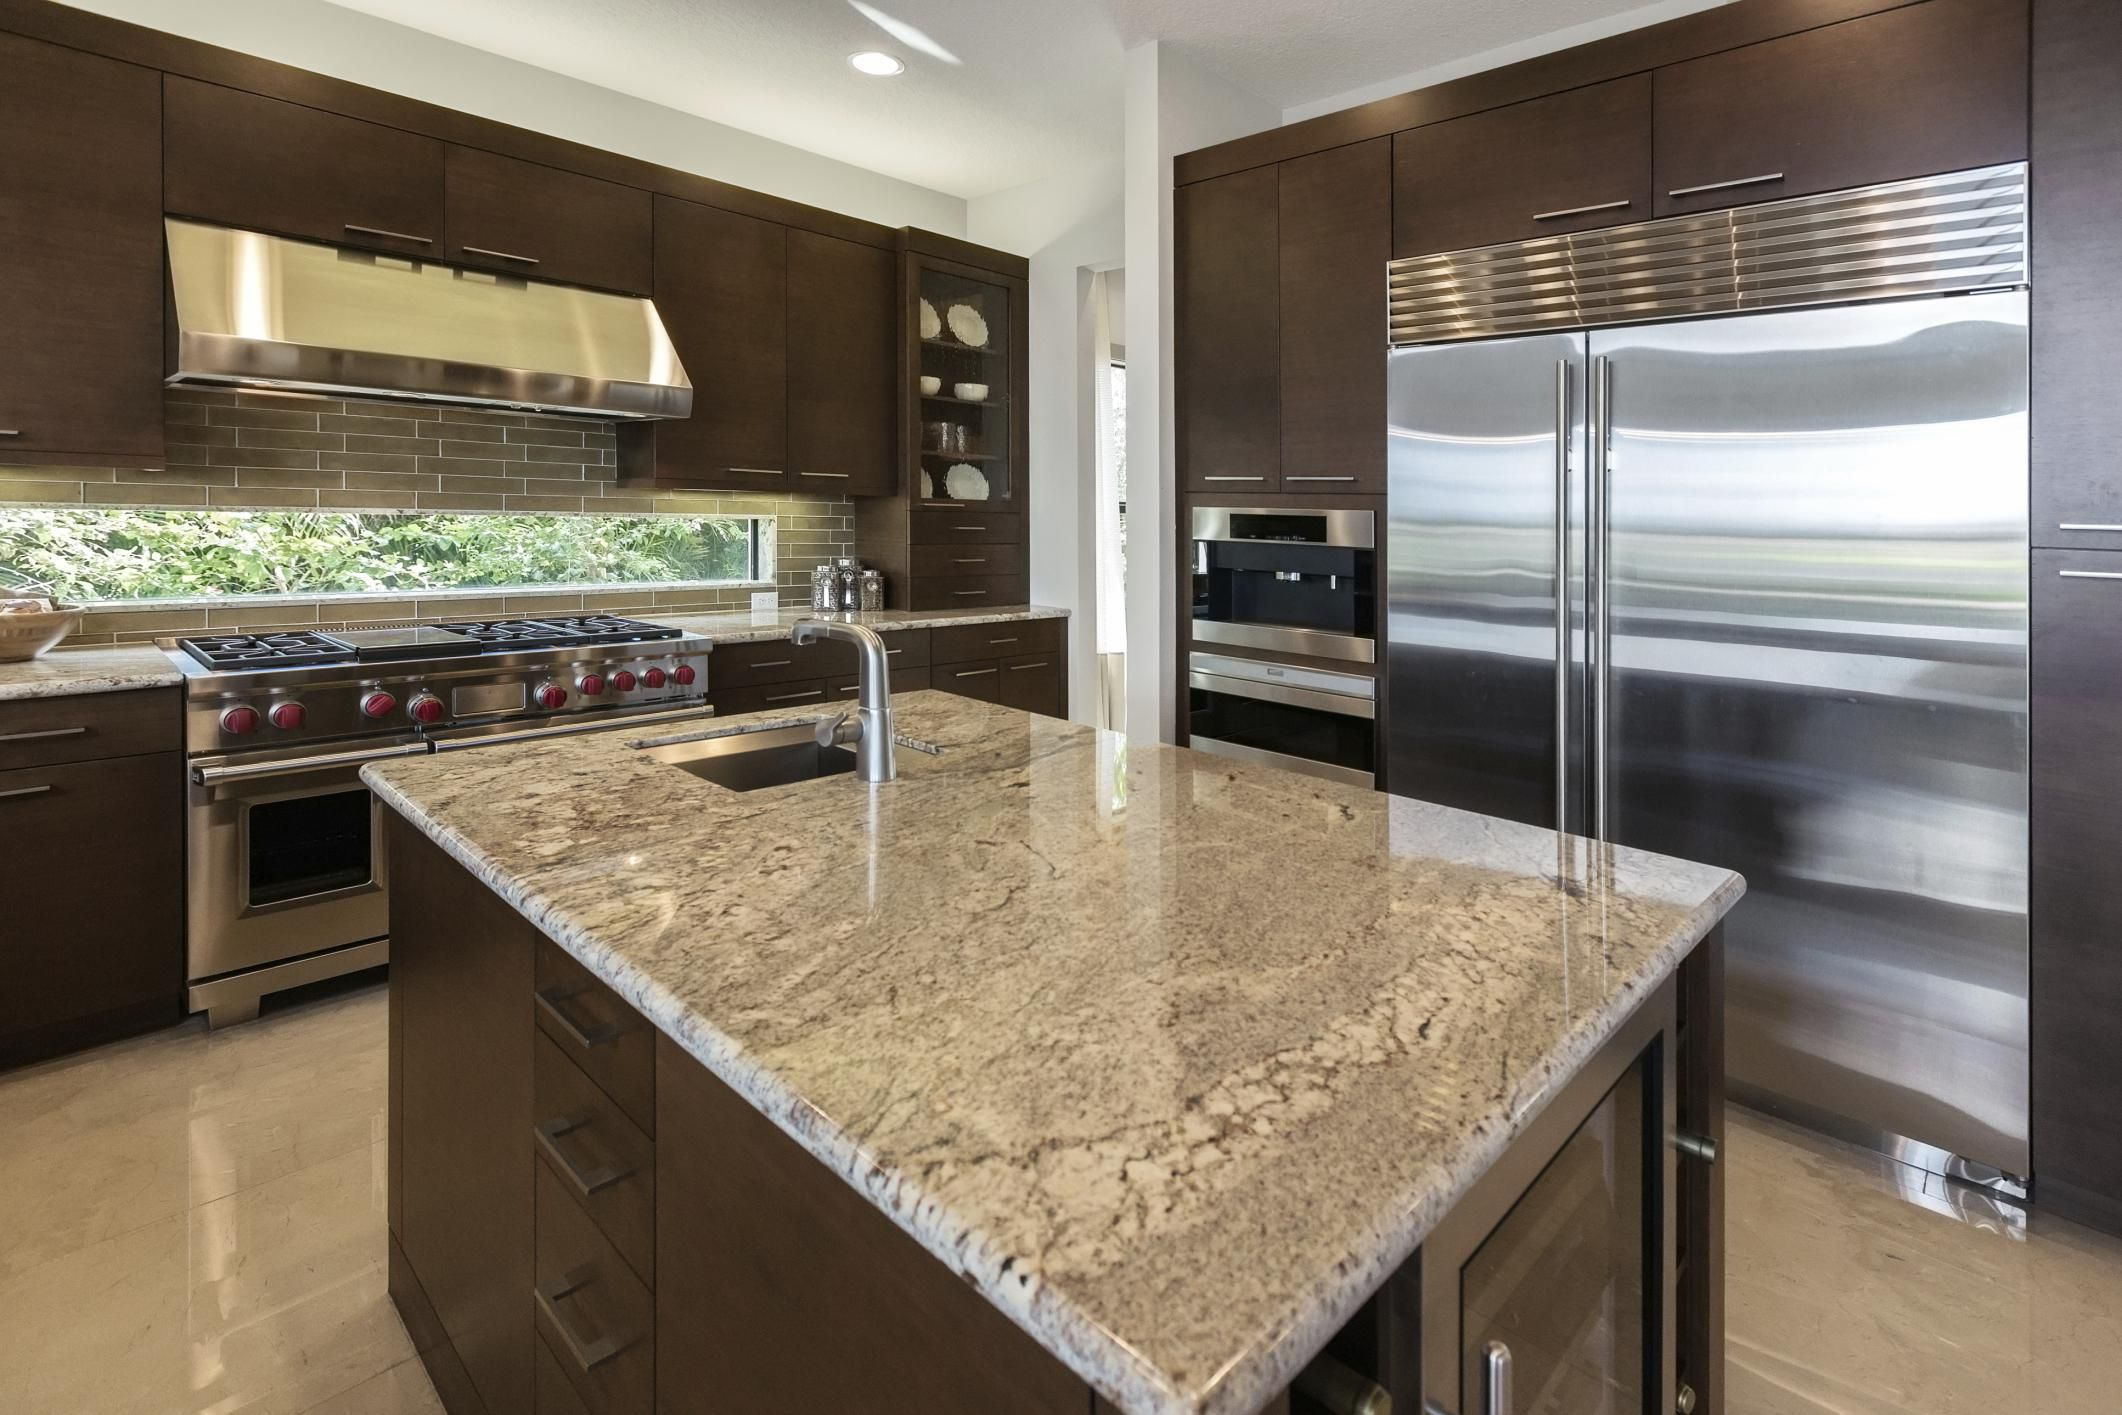 How To Clean Quartz Countertops Stains Sealing And Removing Stains From Granite Countertops